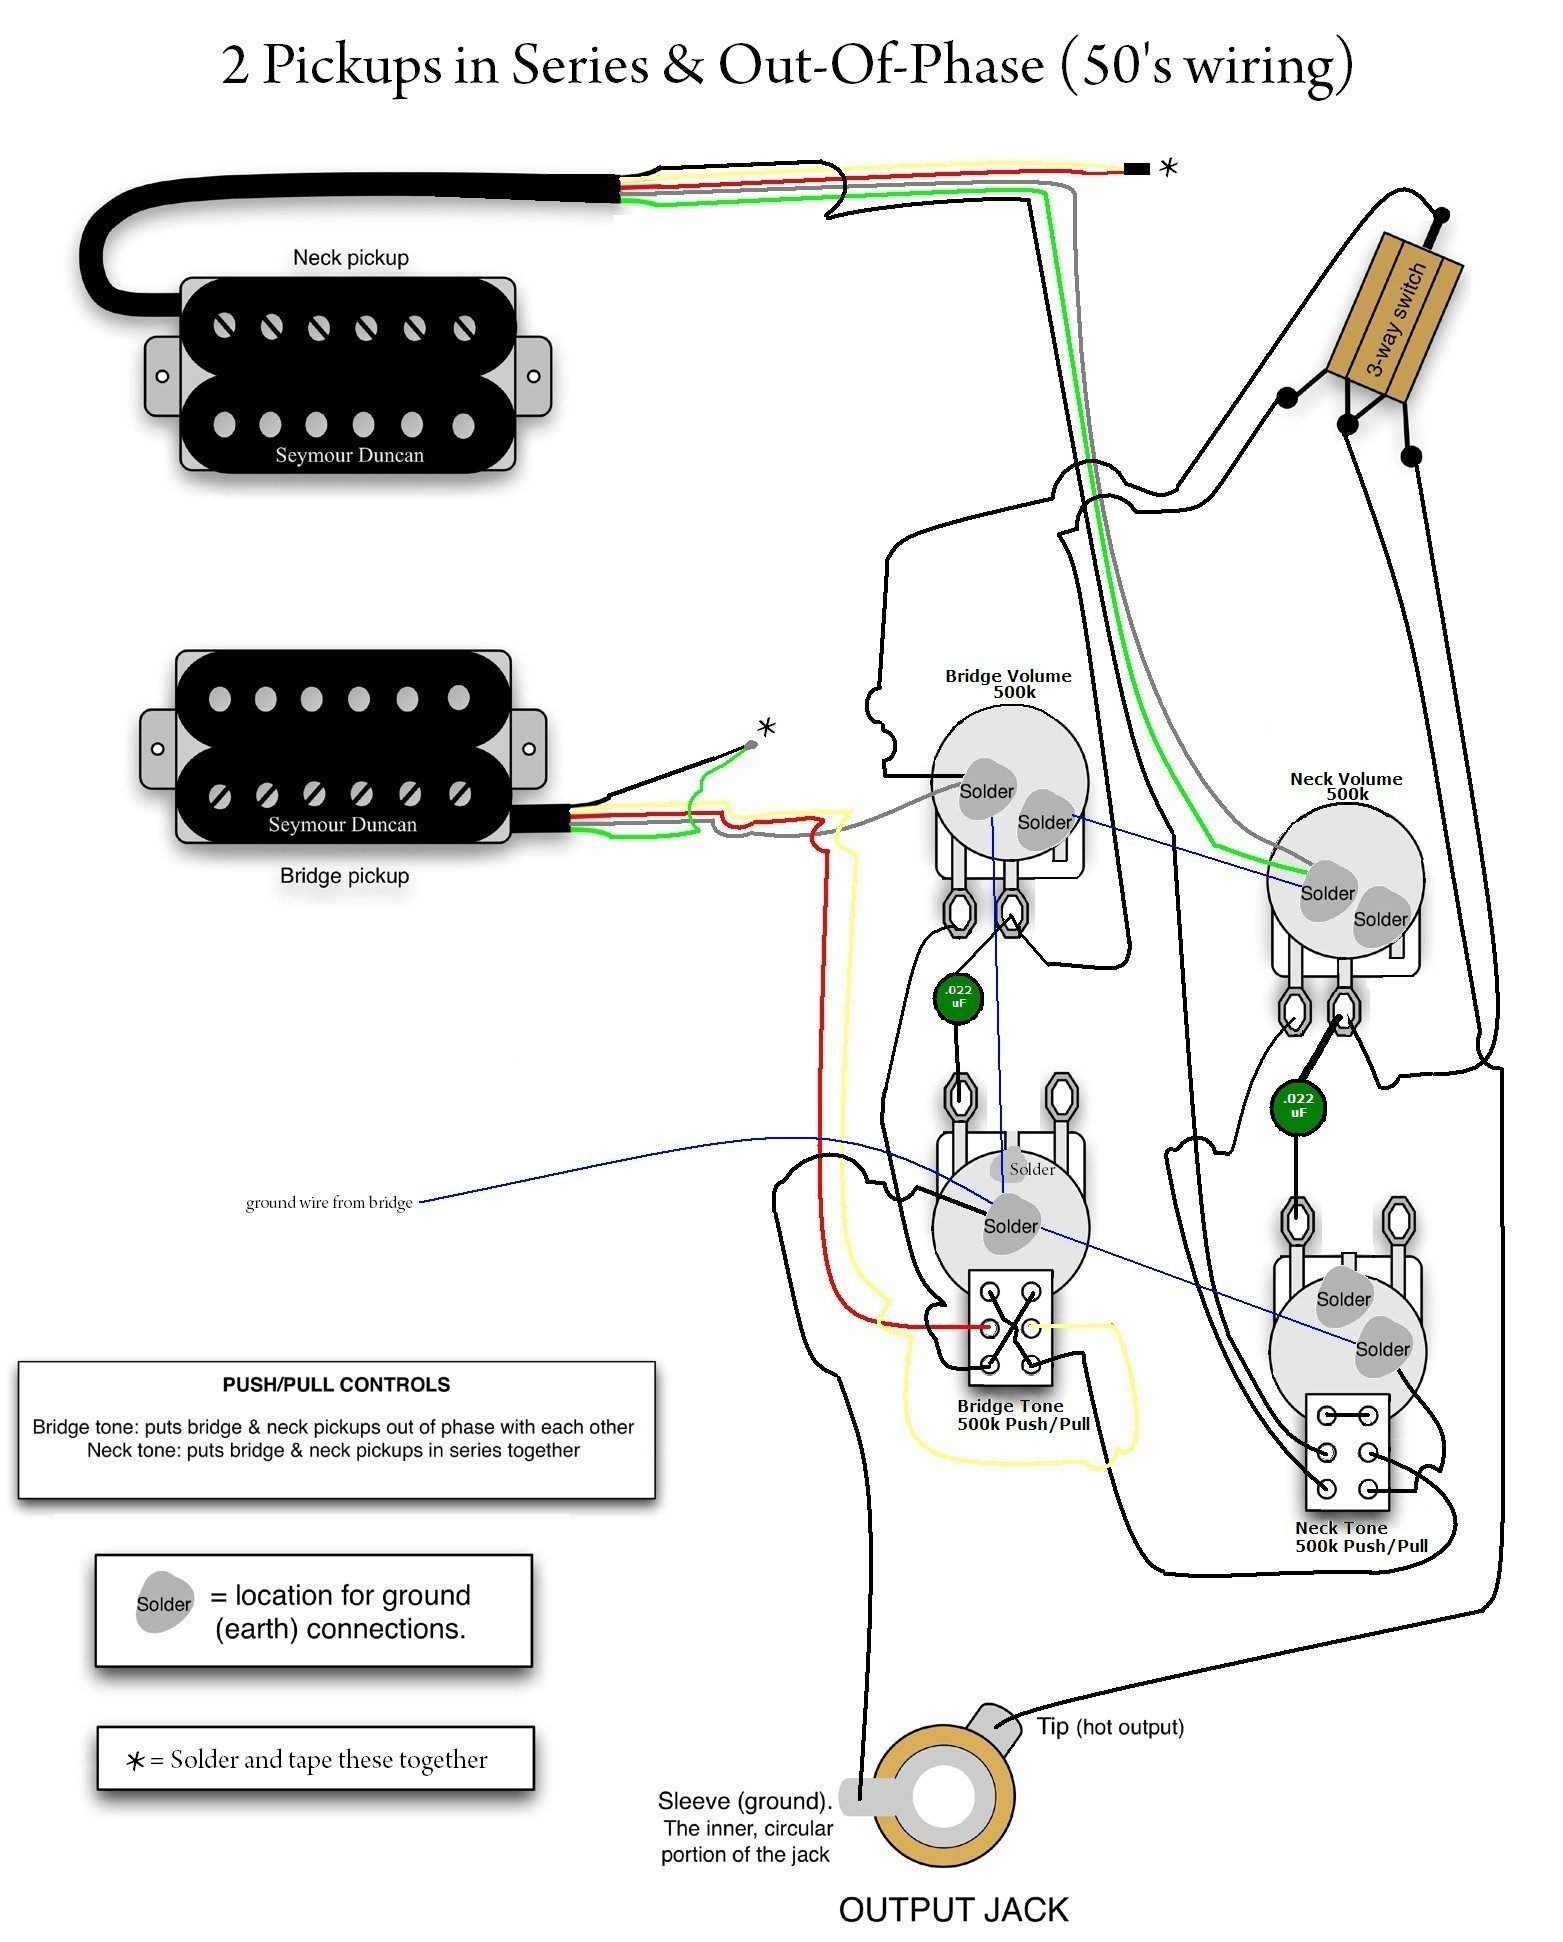 Telecaster Wiring Diagram Coil Tap Wiring Diagram Database - Standard telecaster wiring diagram